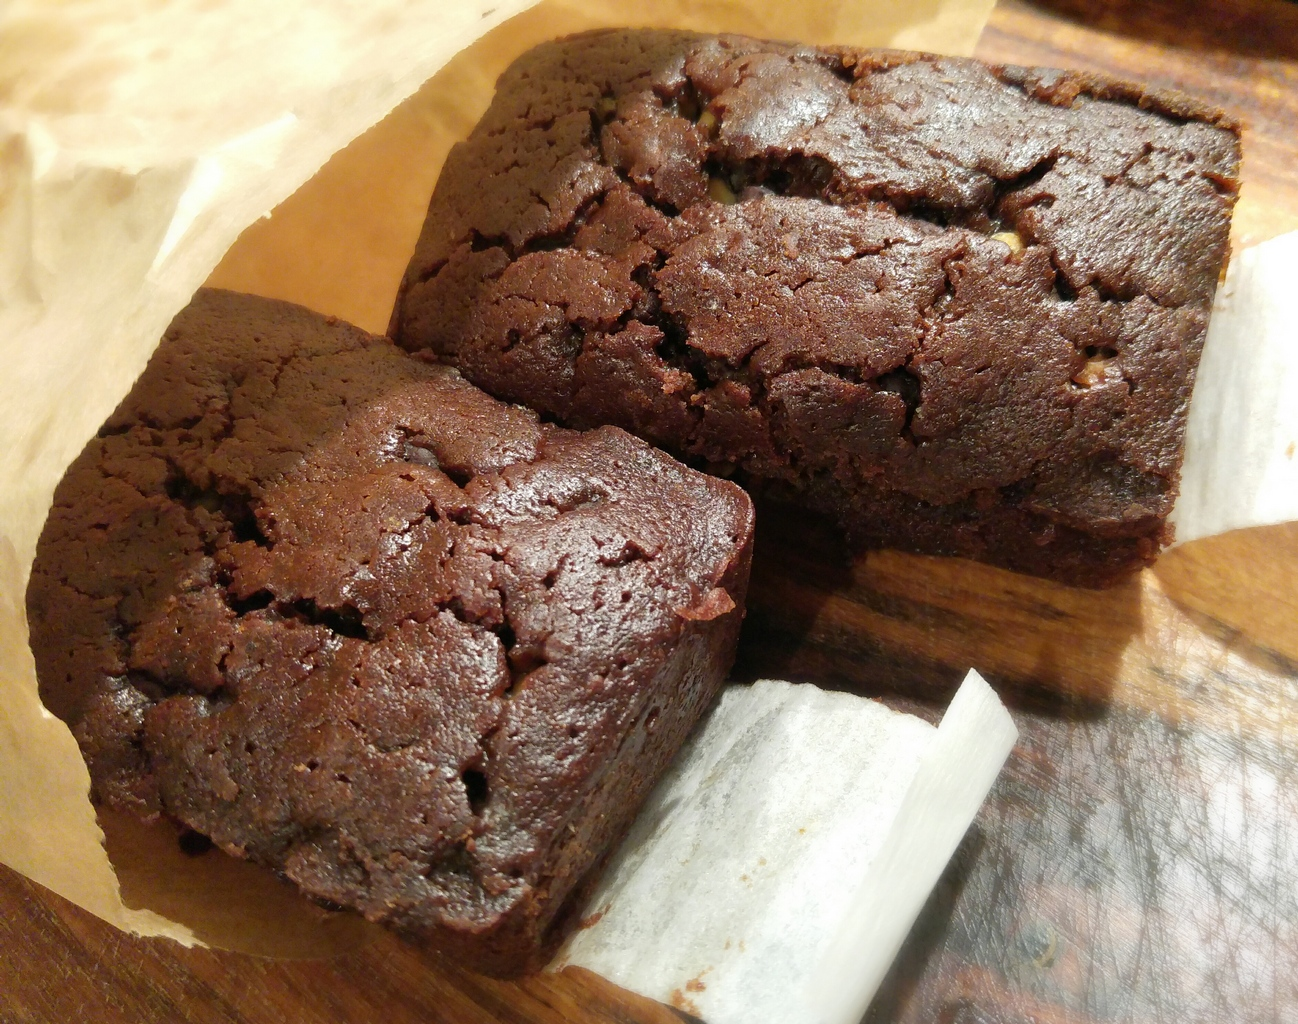 Brewbakers brownies